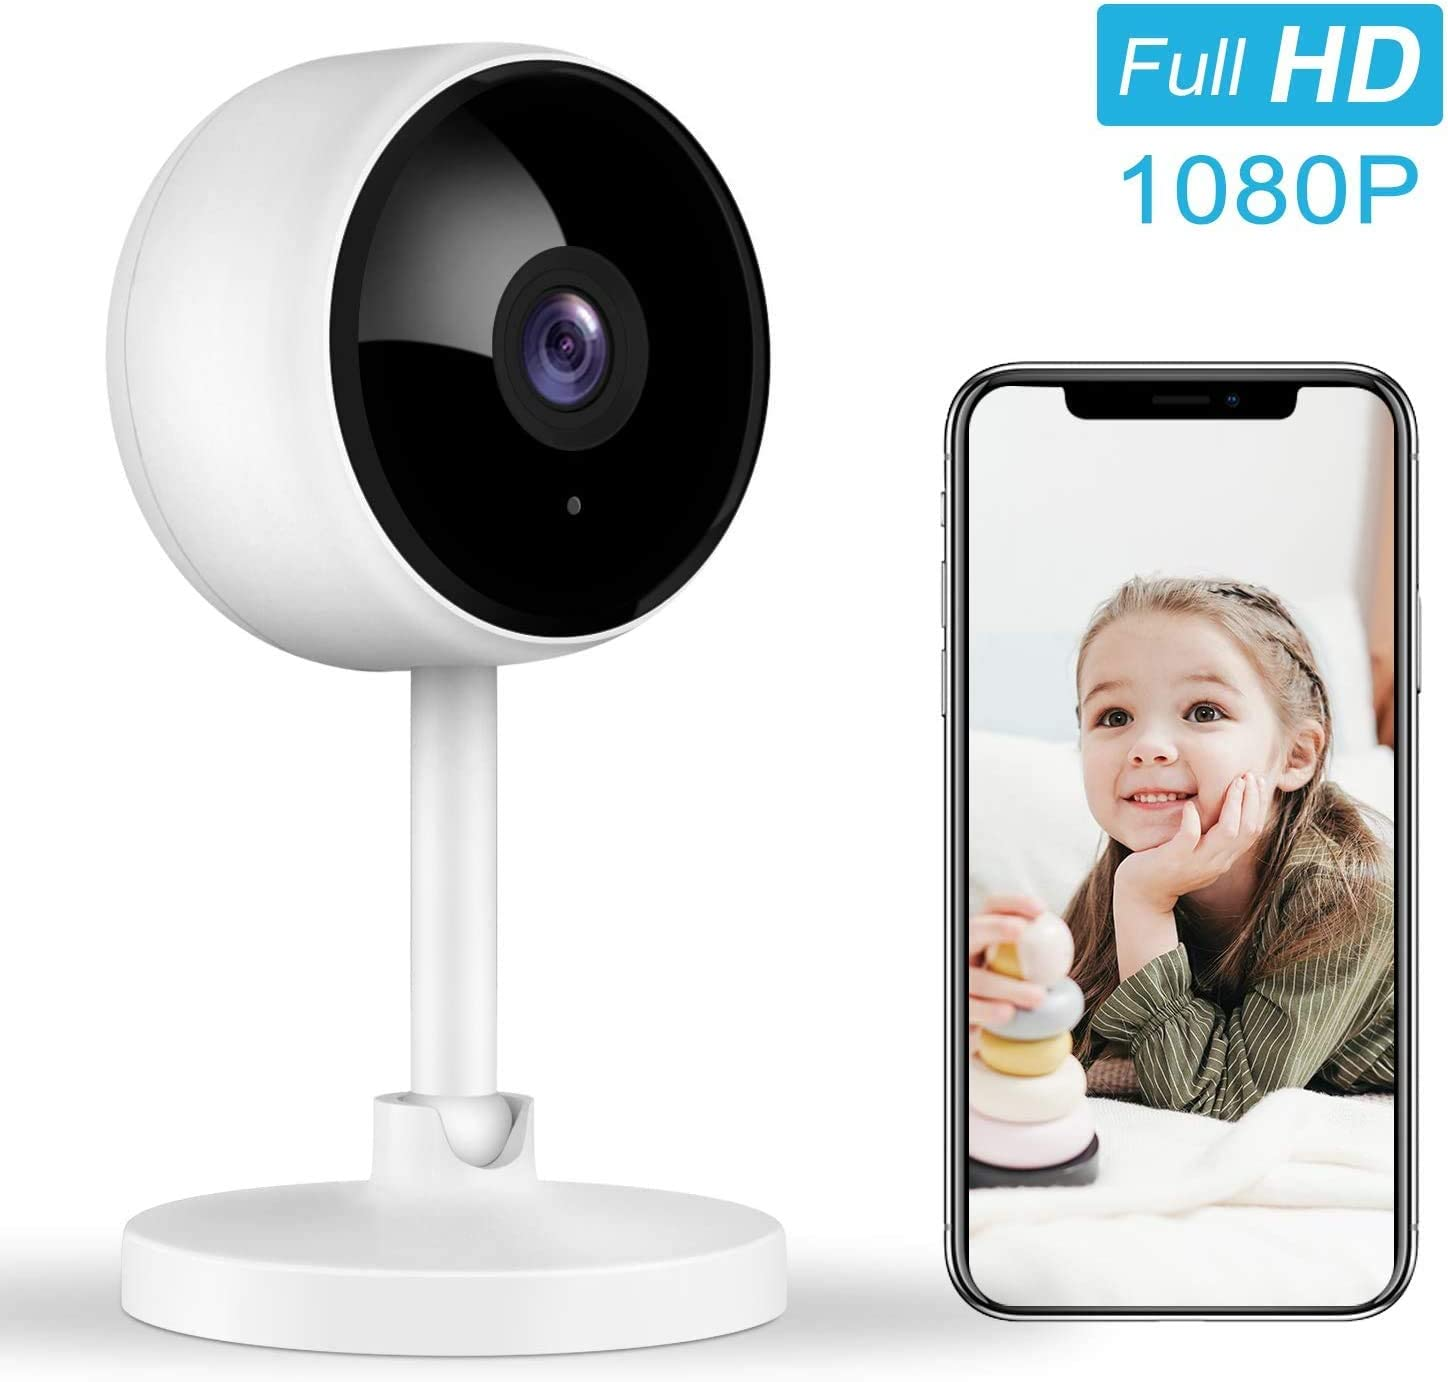 Home Security Camera, Littlelf 1080P FHD Indoor WiFi Wireless Camera with 2-Way Audio, Night Vision, Motion Detection for Pet Elder Baby Monitor, Cloud Storage and MicroSD Support Not Included